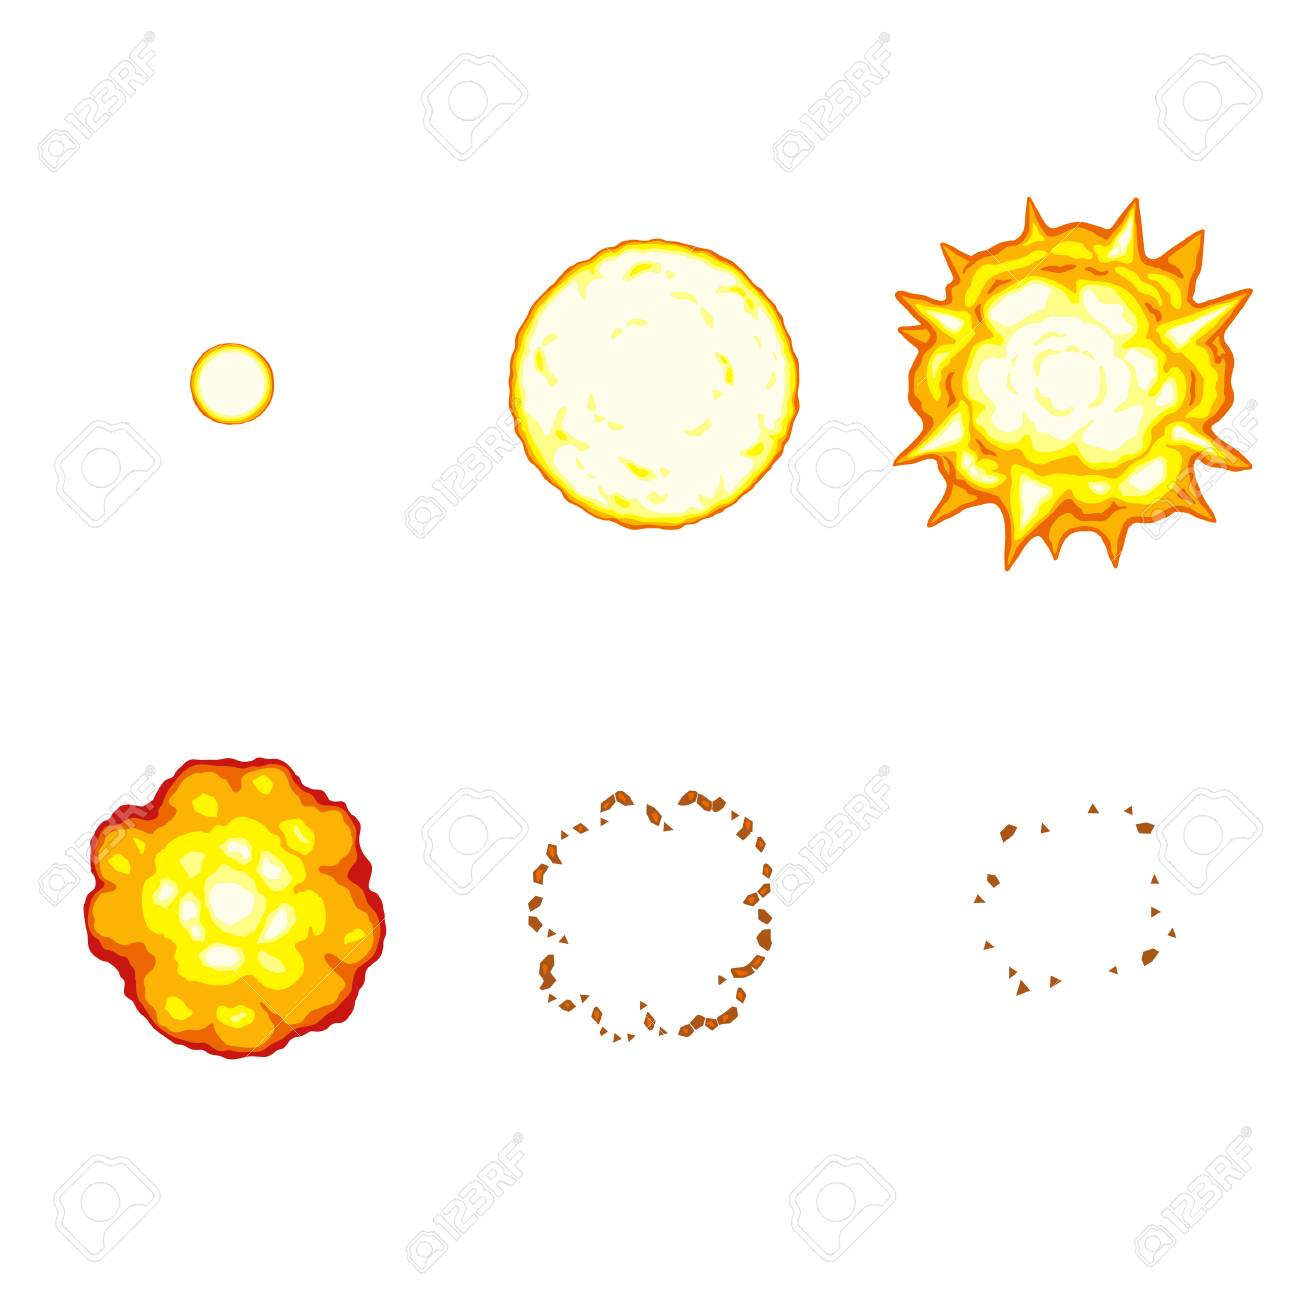 vector illustration of cartoon explosion sprite sheet isolated royalty free cliparts vectors and stock illustration image 108455873 vector illustration of cartoon explosion sprite sheet isolated